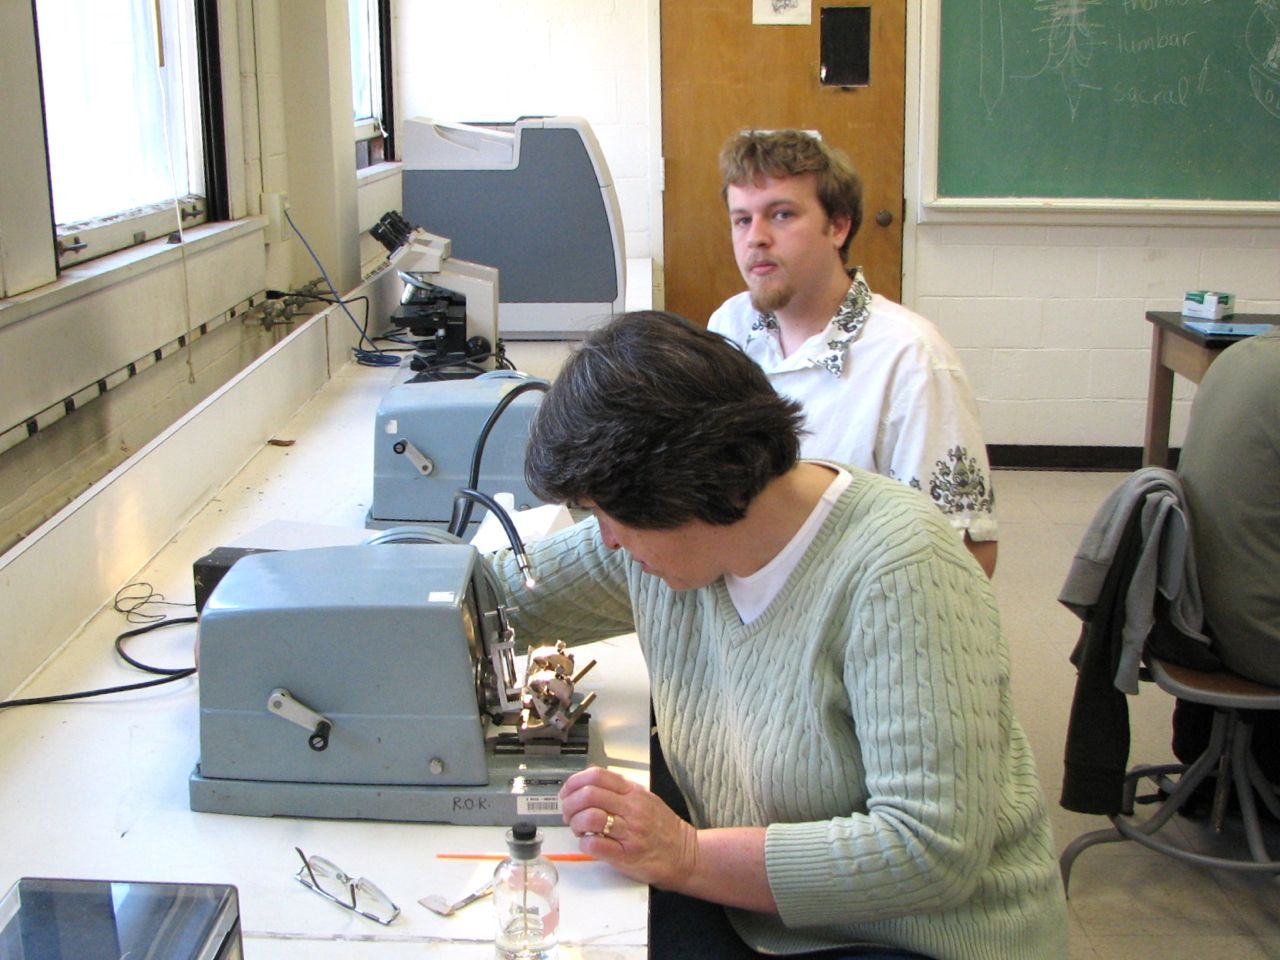 UMass Amherst: Biology Department: Elizabeth Connor in Histology Lab